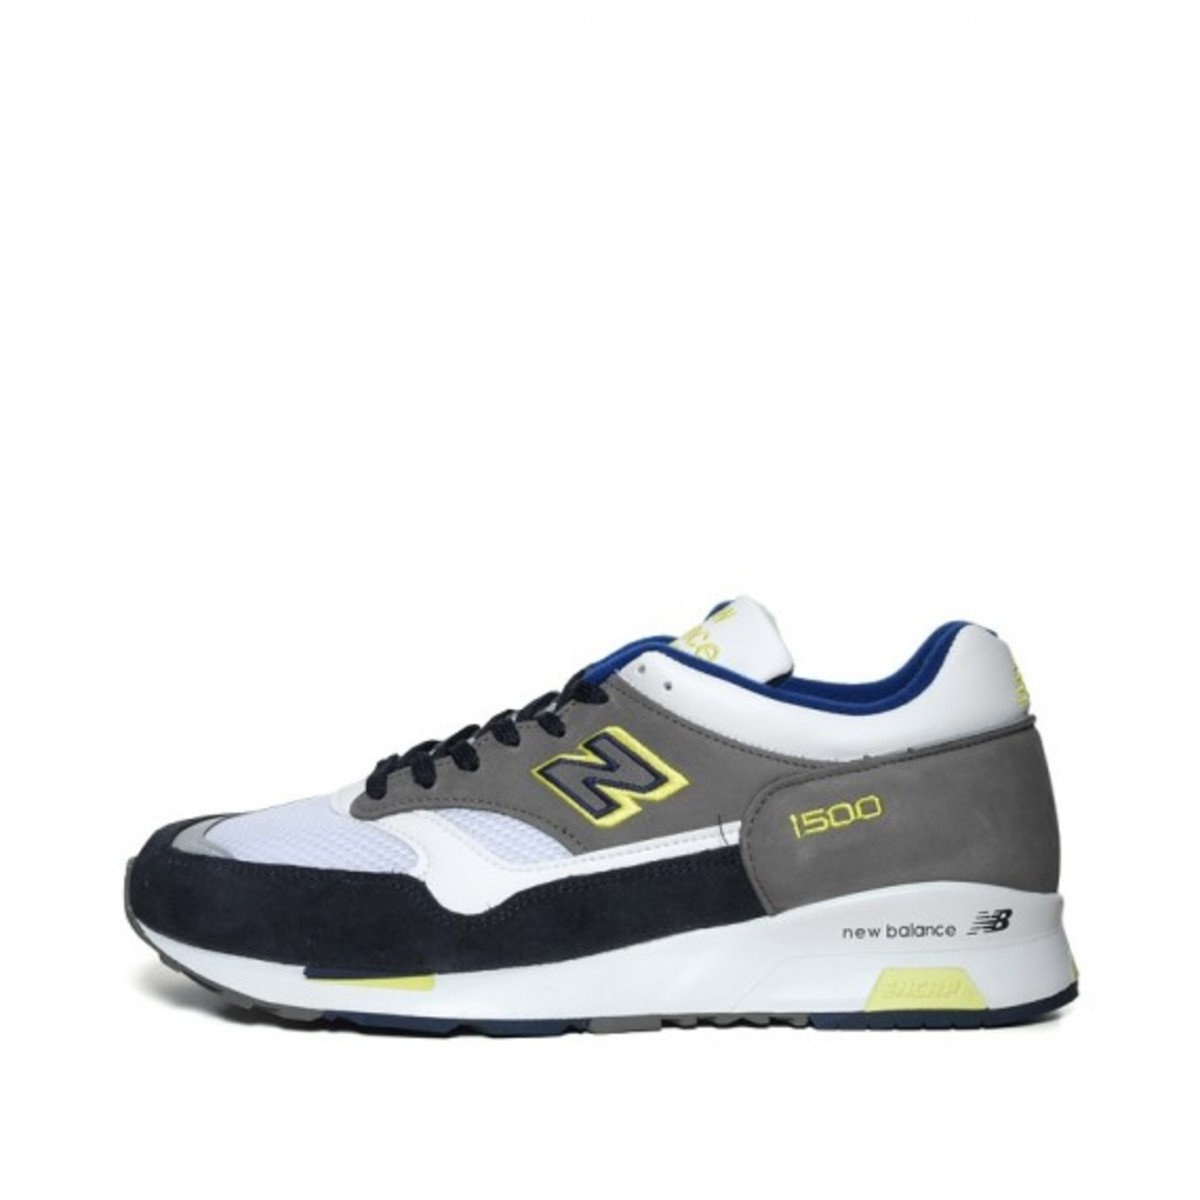 new-balance-m1500-grey-lemon-02